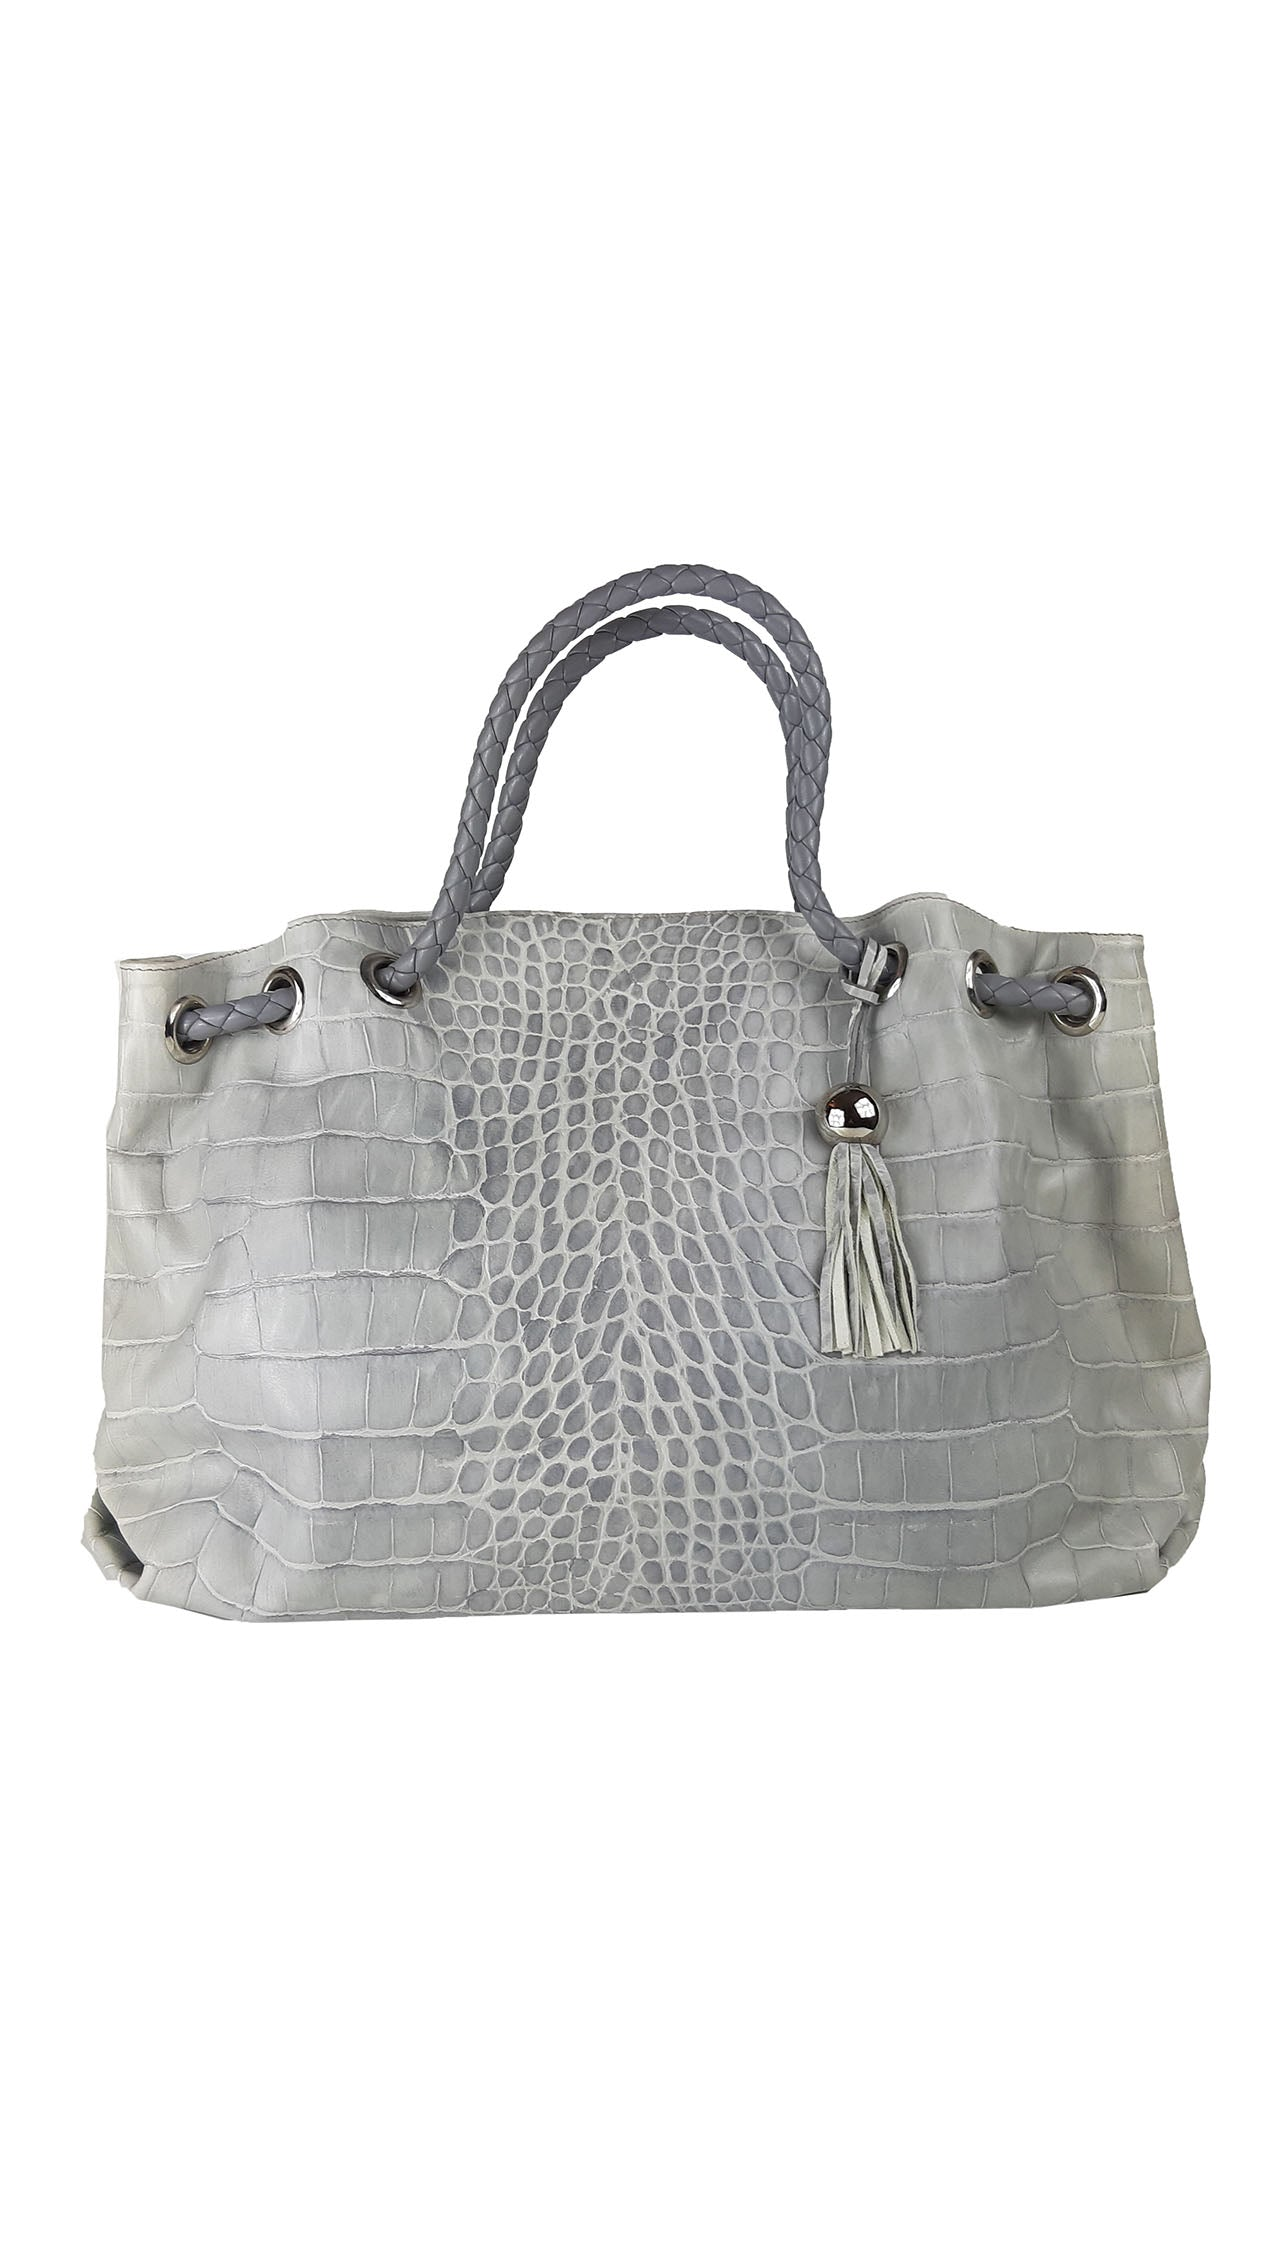 Furla Grey Handbag in Crocodile Leather